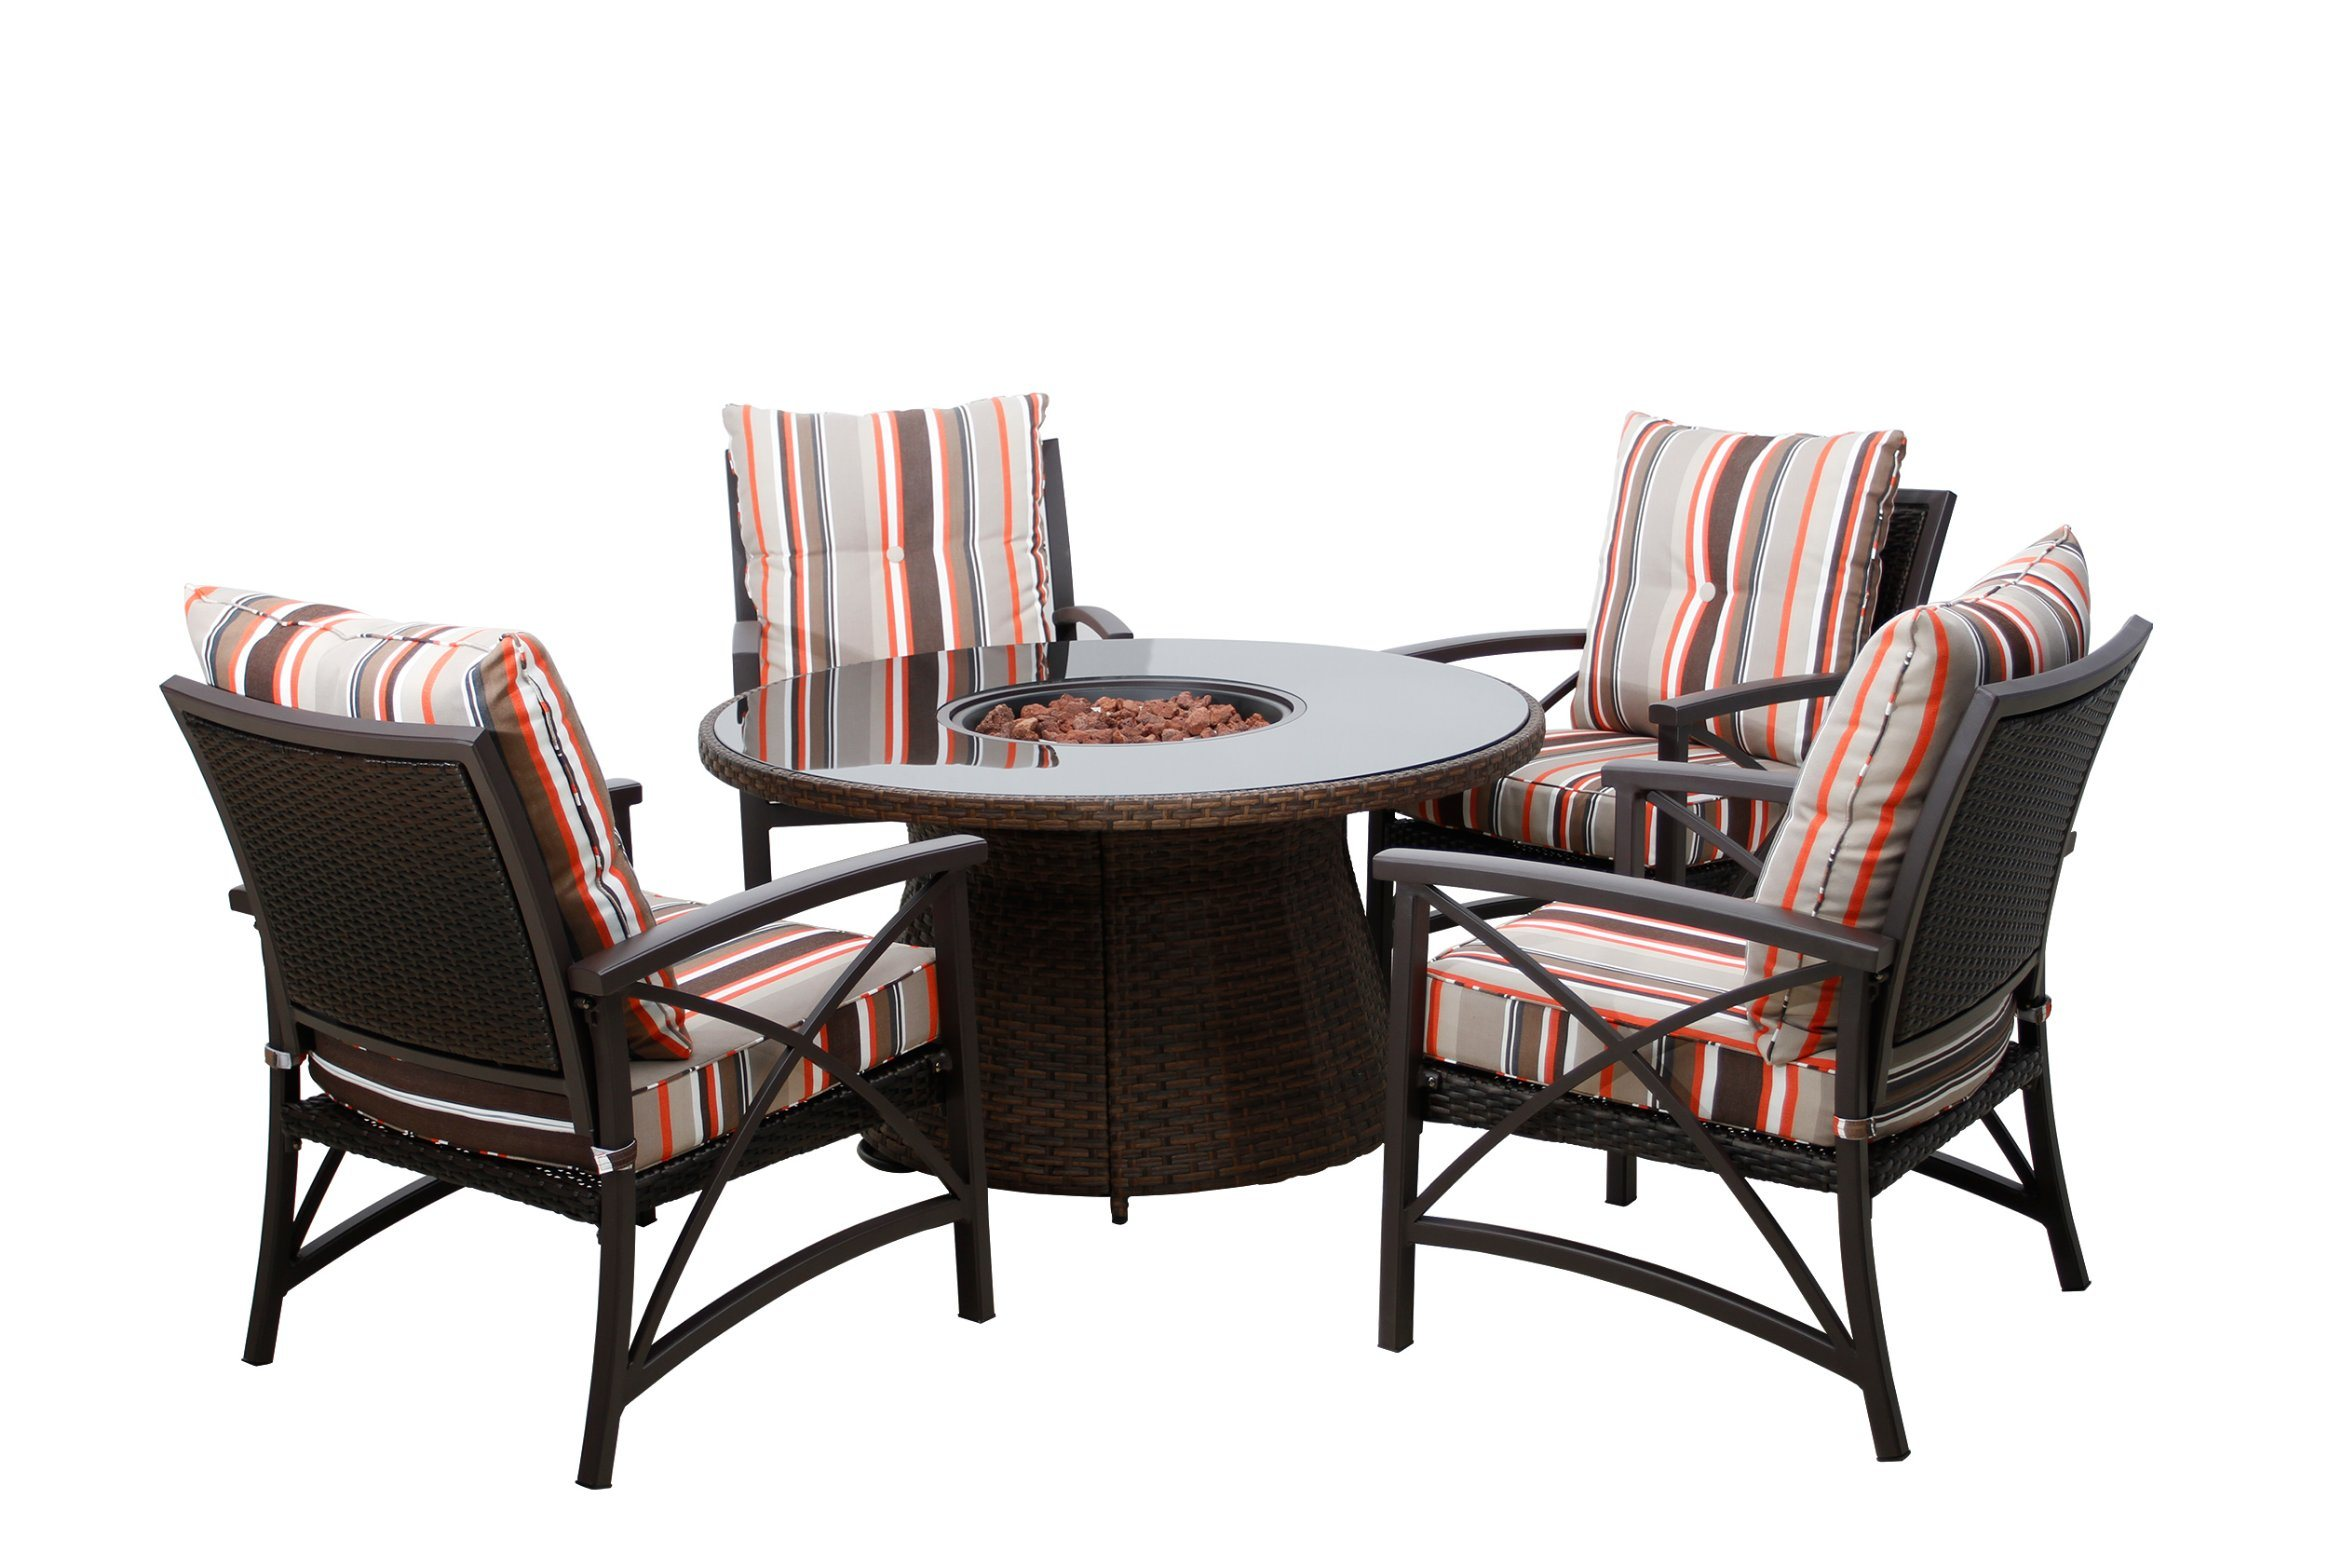 Image of: China Garden Outdoor Modern Rattan Table And Chair Home Heater Hotel Firepit Furniture China Garden Furniture Furniture